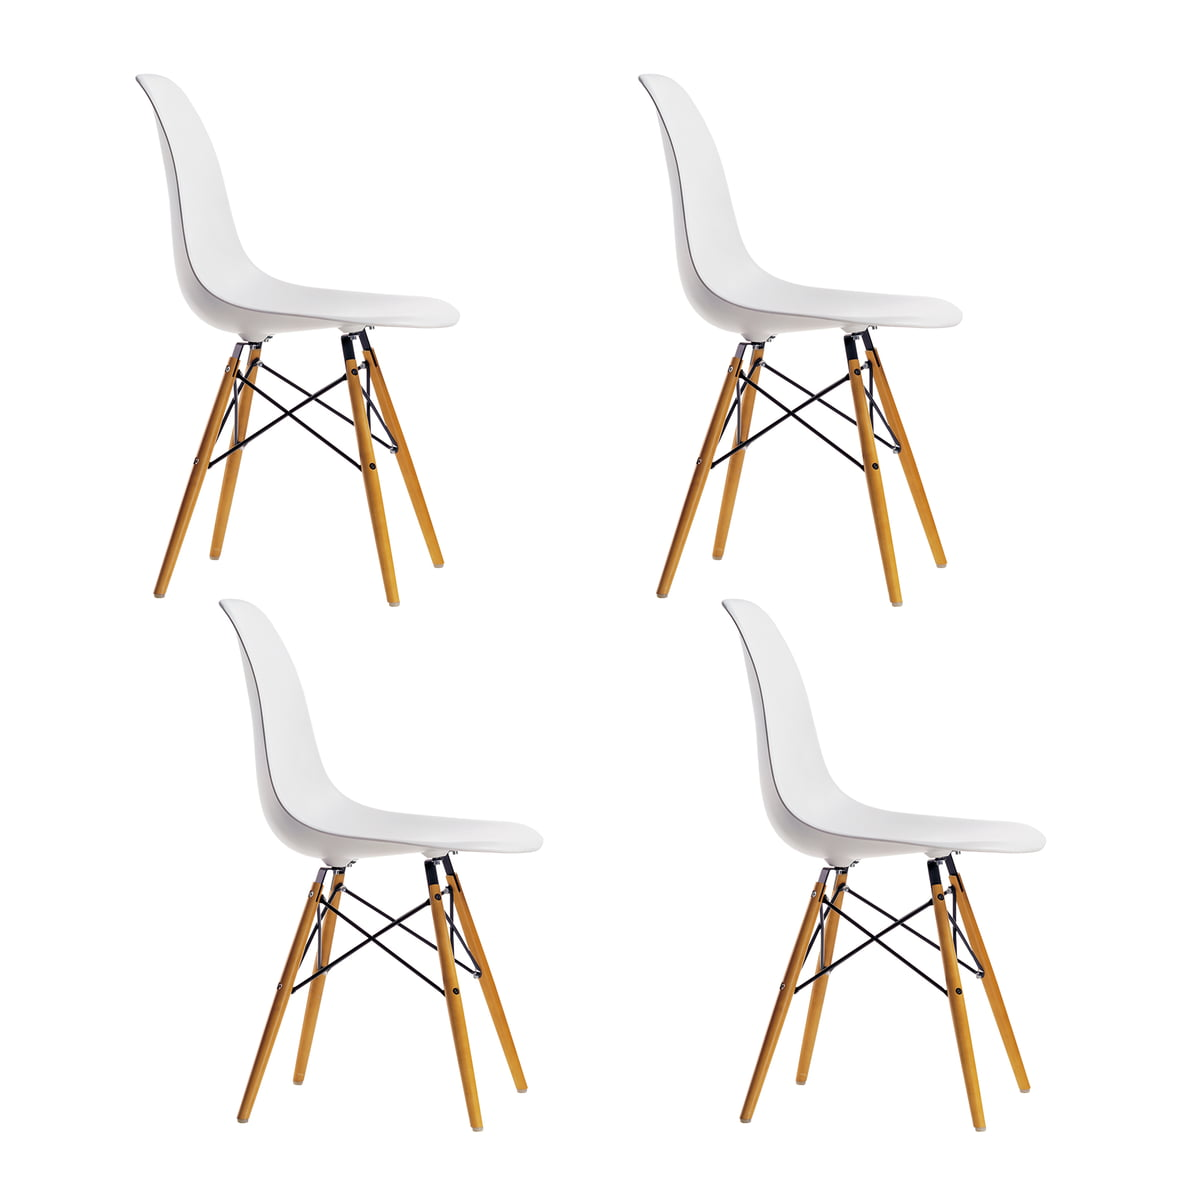 Marvelous Vitra Promotion Set Eames Plastic Side Chair Dsw Set Of 4 Maple Yellowish White Felt Glider White Ocoug Best Dining Table And Chair Ideas Images Ocougorg